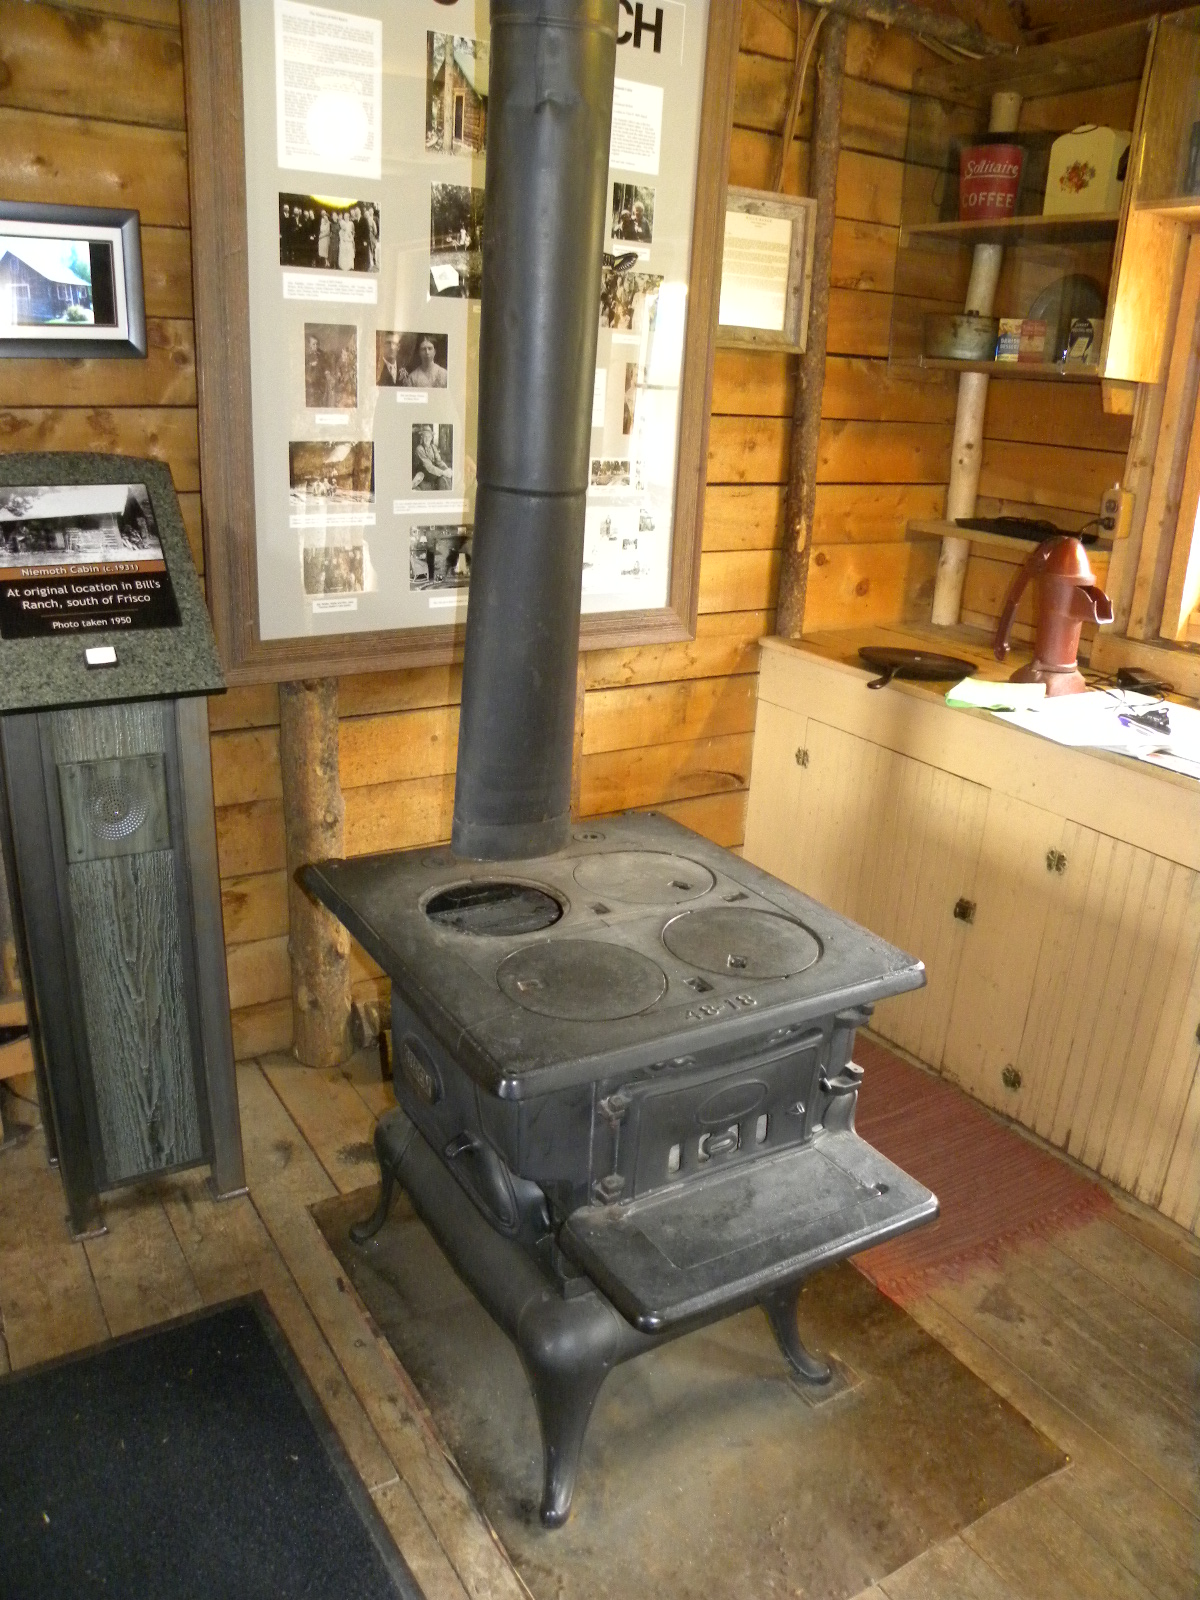 This cast iron wood burning stove used for cooking is one of two heat sources in the Niemoth Cabin; the fully functional fireplace was restored in the mid-80's once the cabin was moved to the Park.